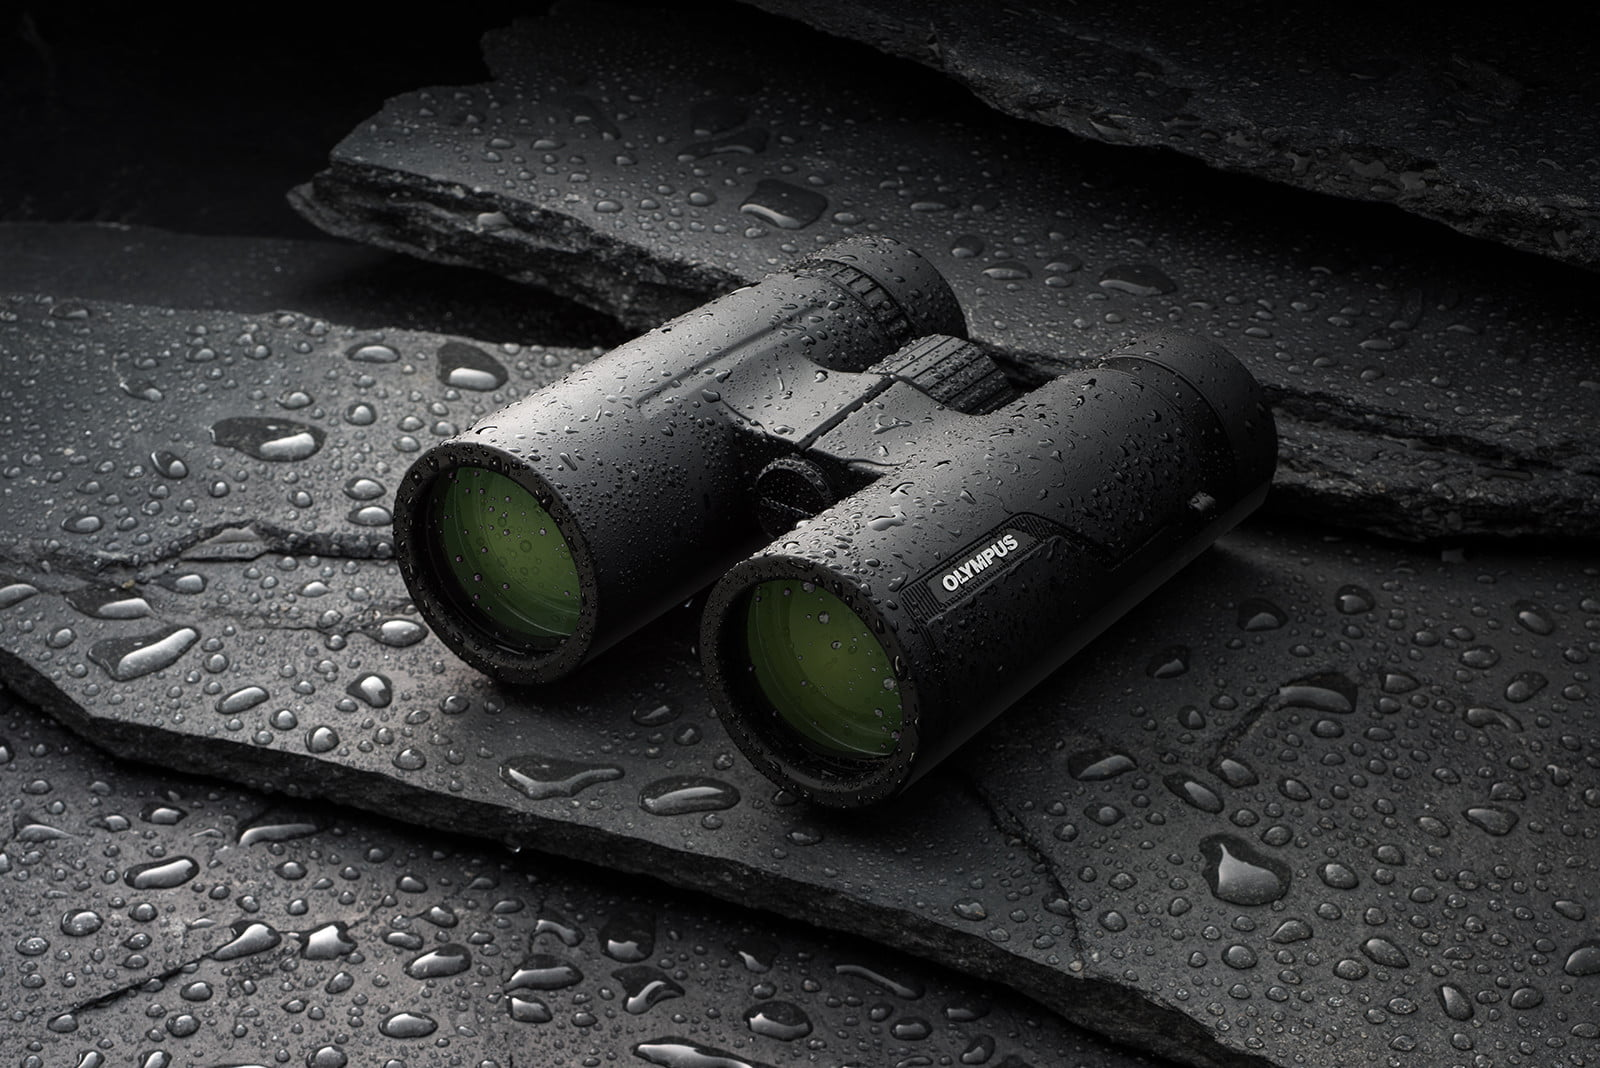 Worldwide Binoculars Market Global Industry – Key Players, Market Size, Market Share, Segmentation